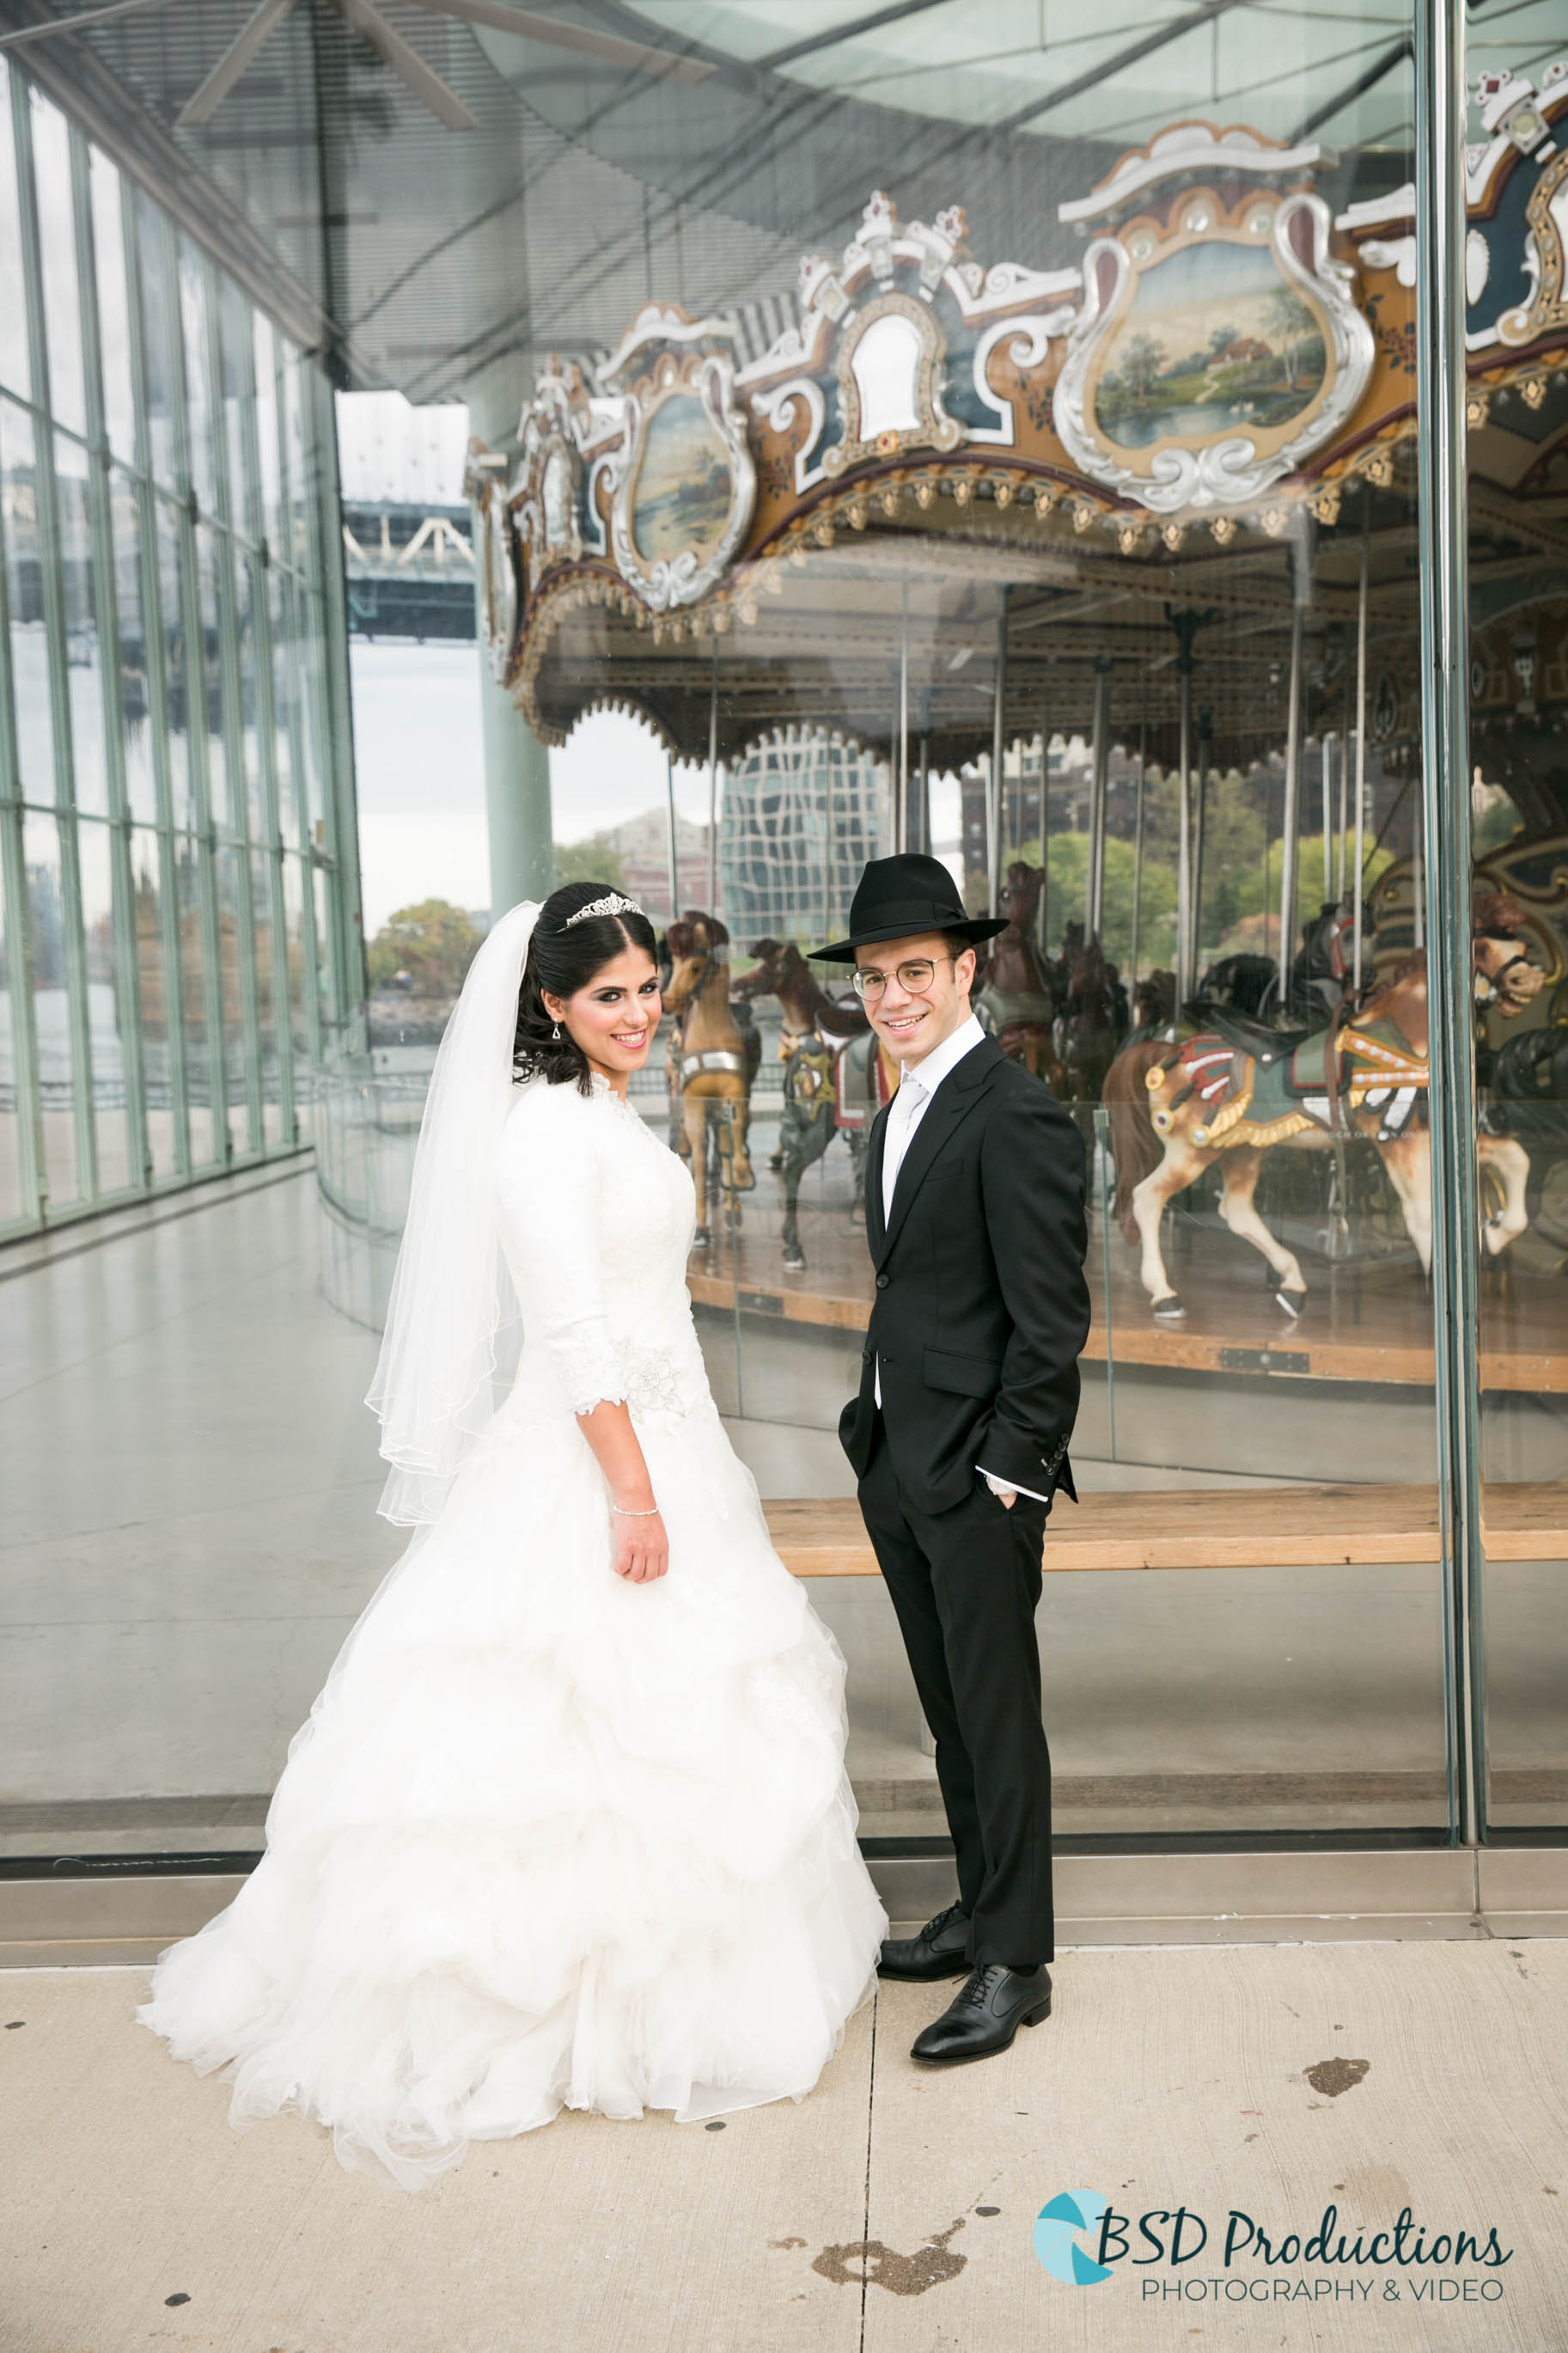 UH5A0155 Wedding – BSD Productions Photography